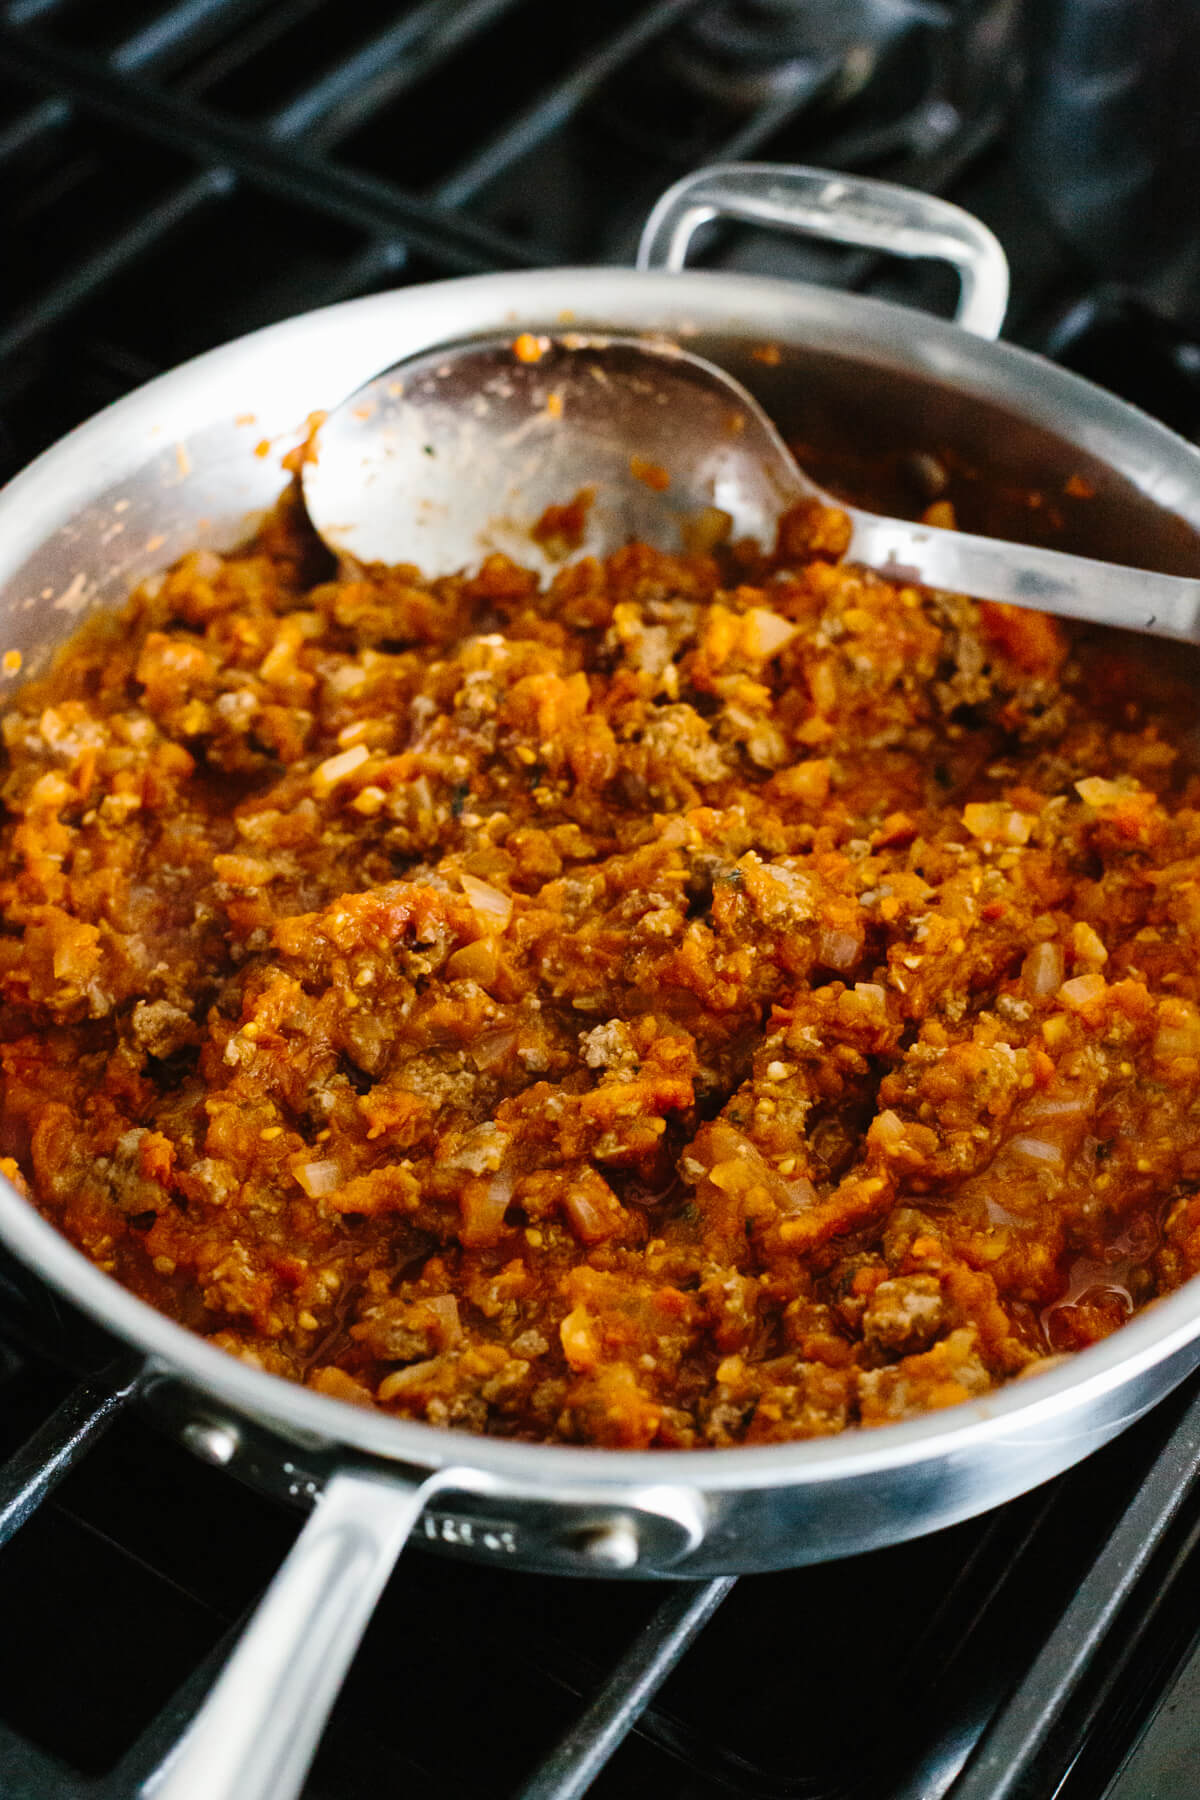 Bolognese sauce in a pan on the stove.